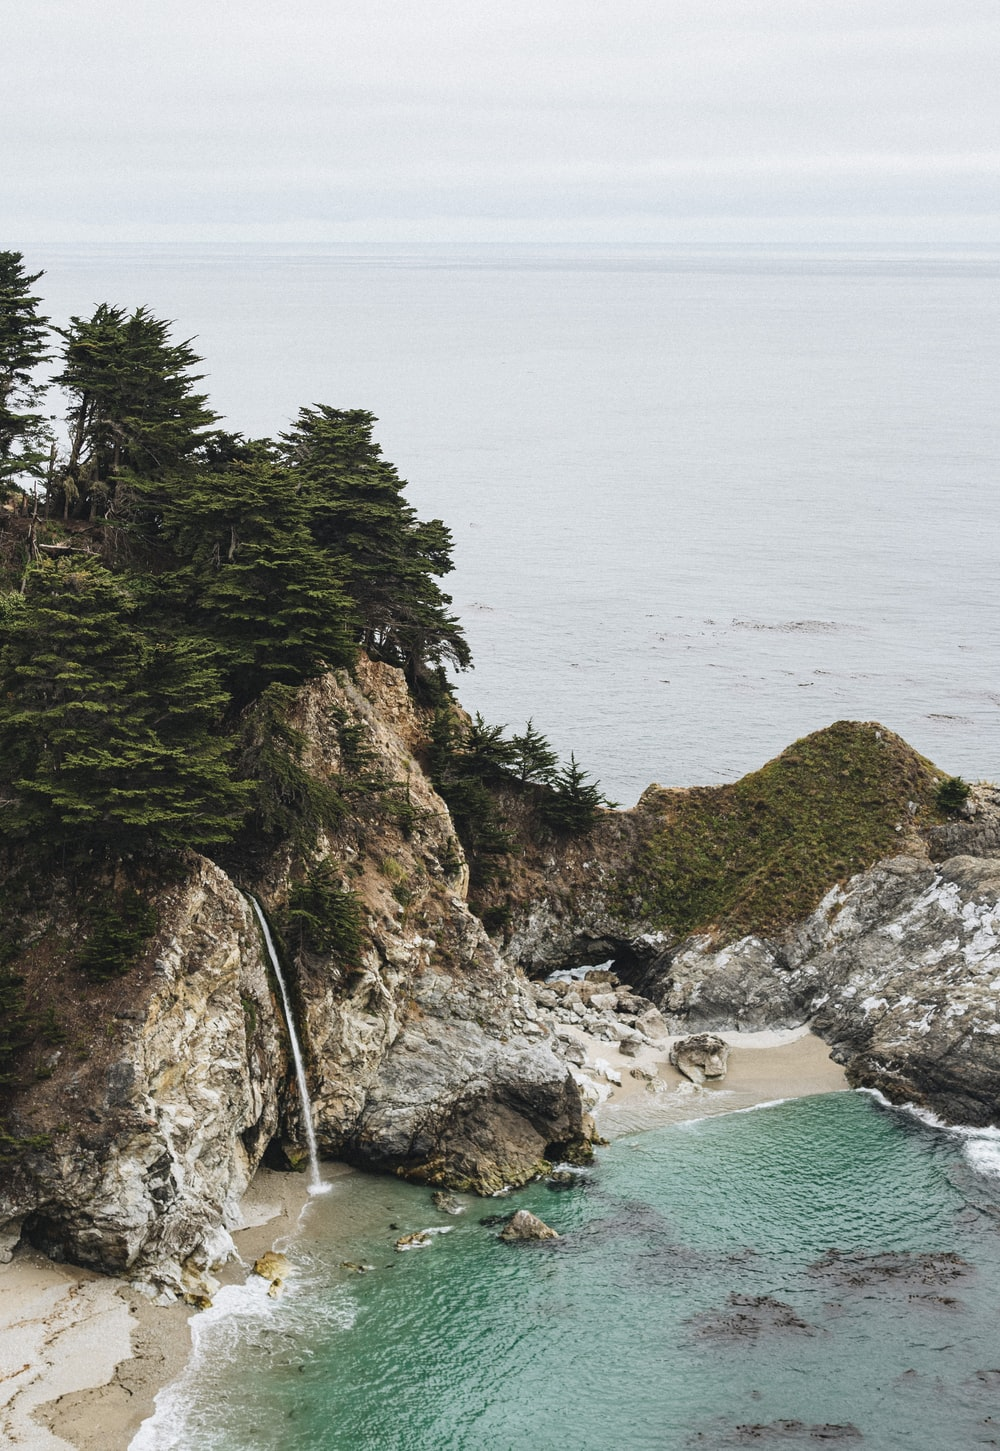 green trees on brown rock formation beside sea during daytime